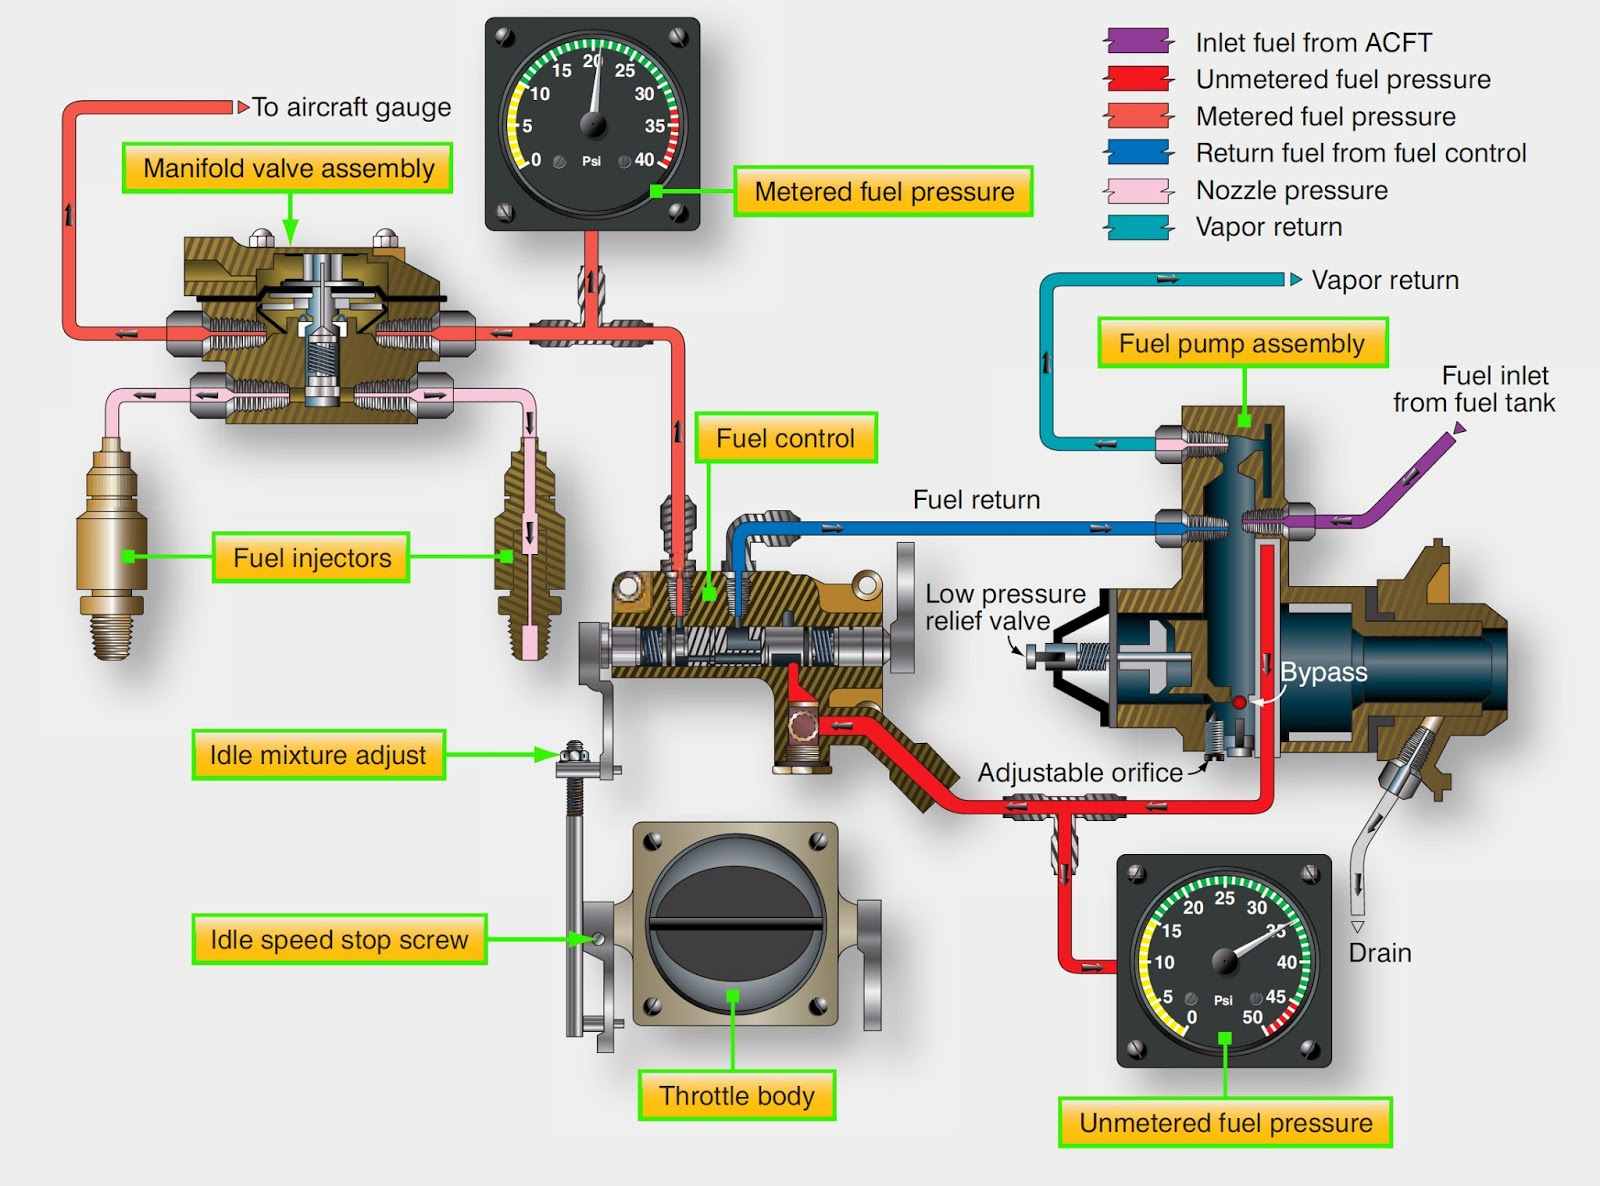 Continental%2BTCM%2BFuel Injection%2BSystem denso wiring harness dog harness wiring diagram ~ odicis denso wiring harness at readyjetset.co